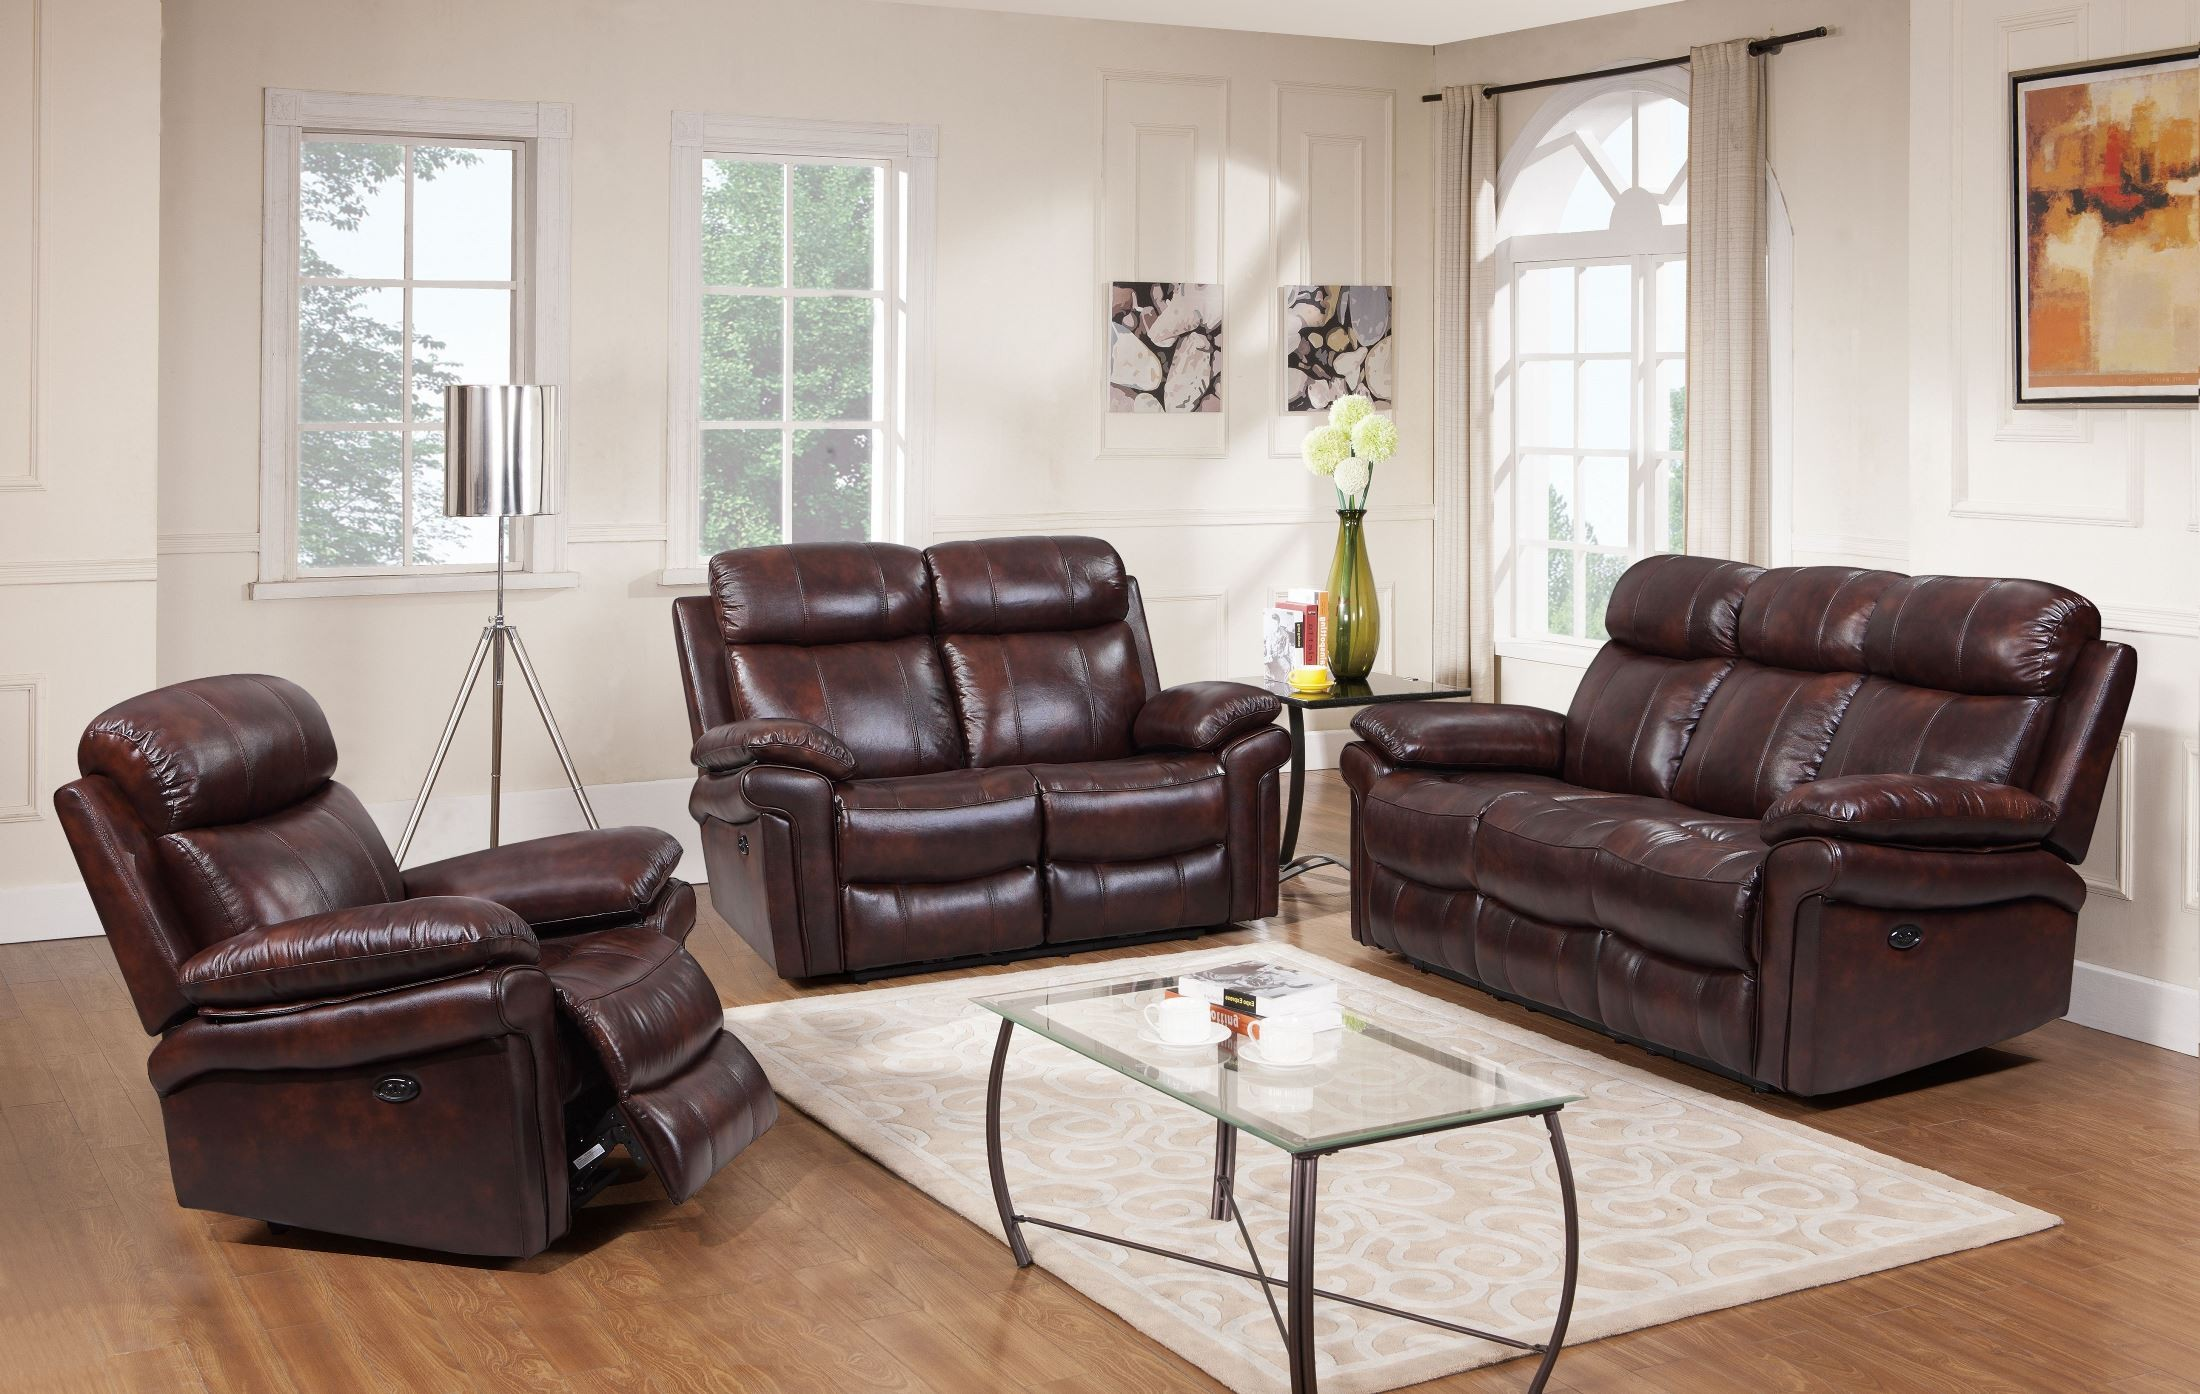 Shae joplin brown leather power reclining living room set for Front room furniture sets